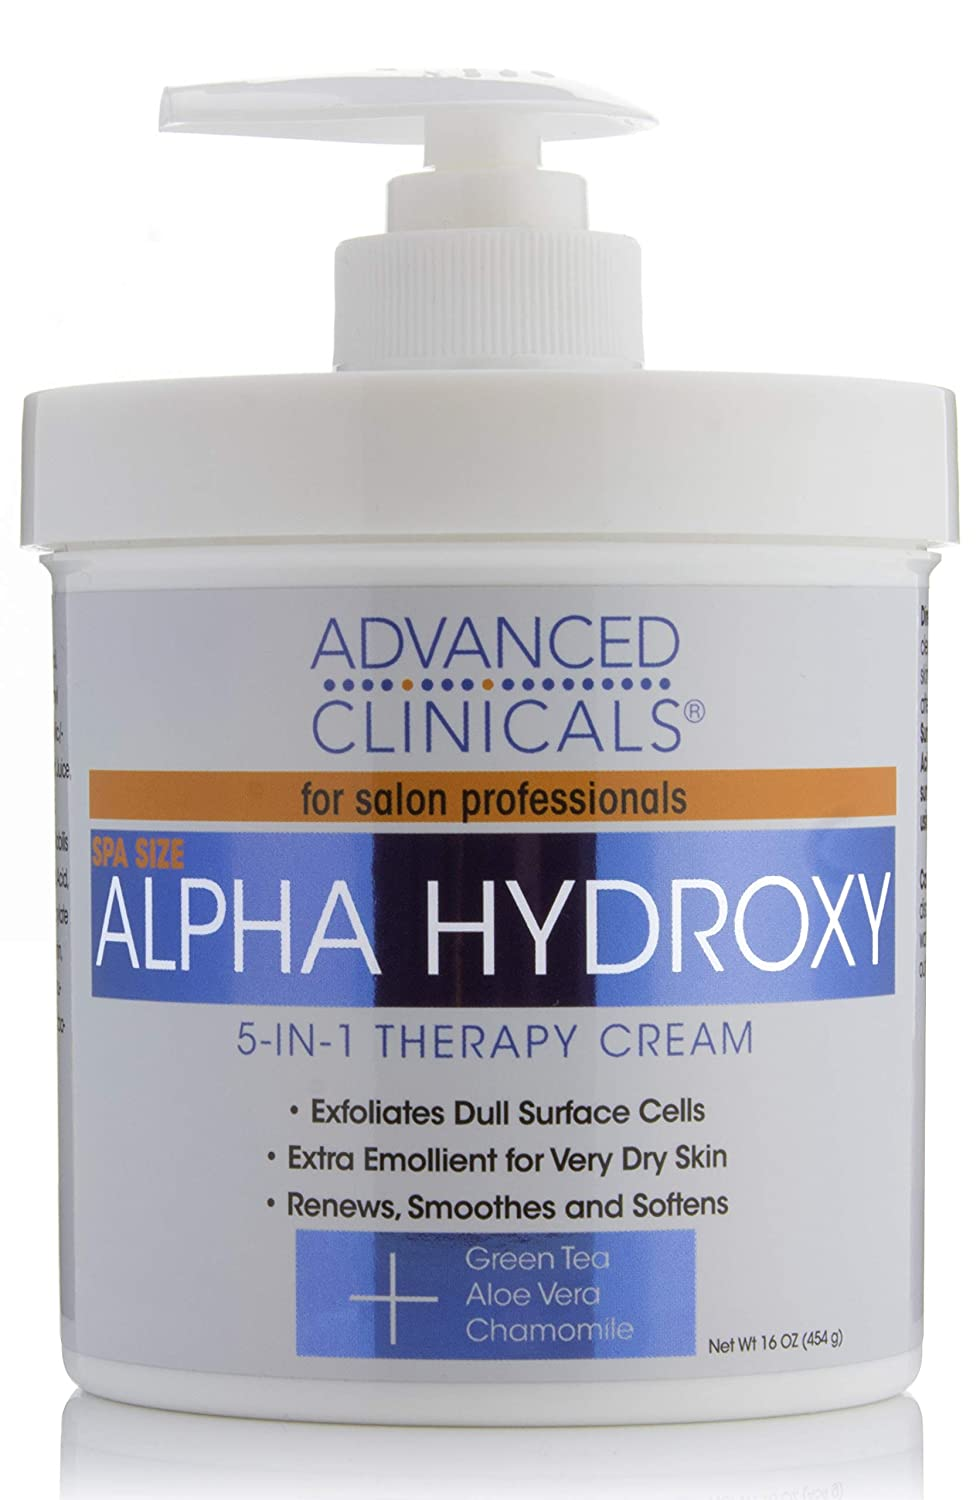 Advanced Clinicals Alpha Hydroxy Acid Cream for face and body. 16oz anti-aging cream with Alpha Hydroxy Acid for wrinkles, fine lines, dry skin. (16oz)